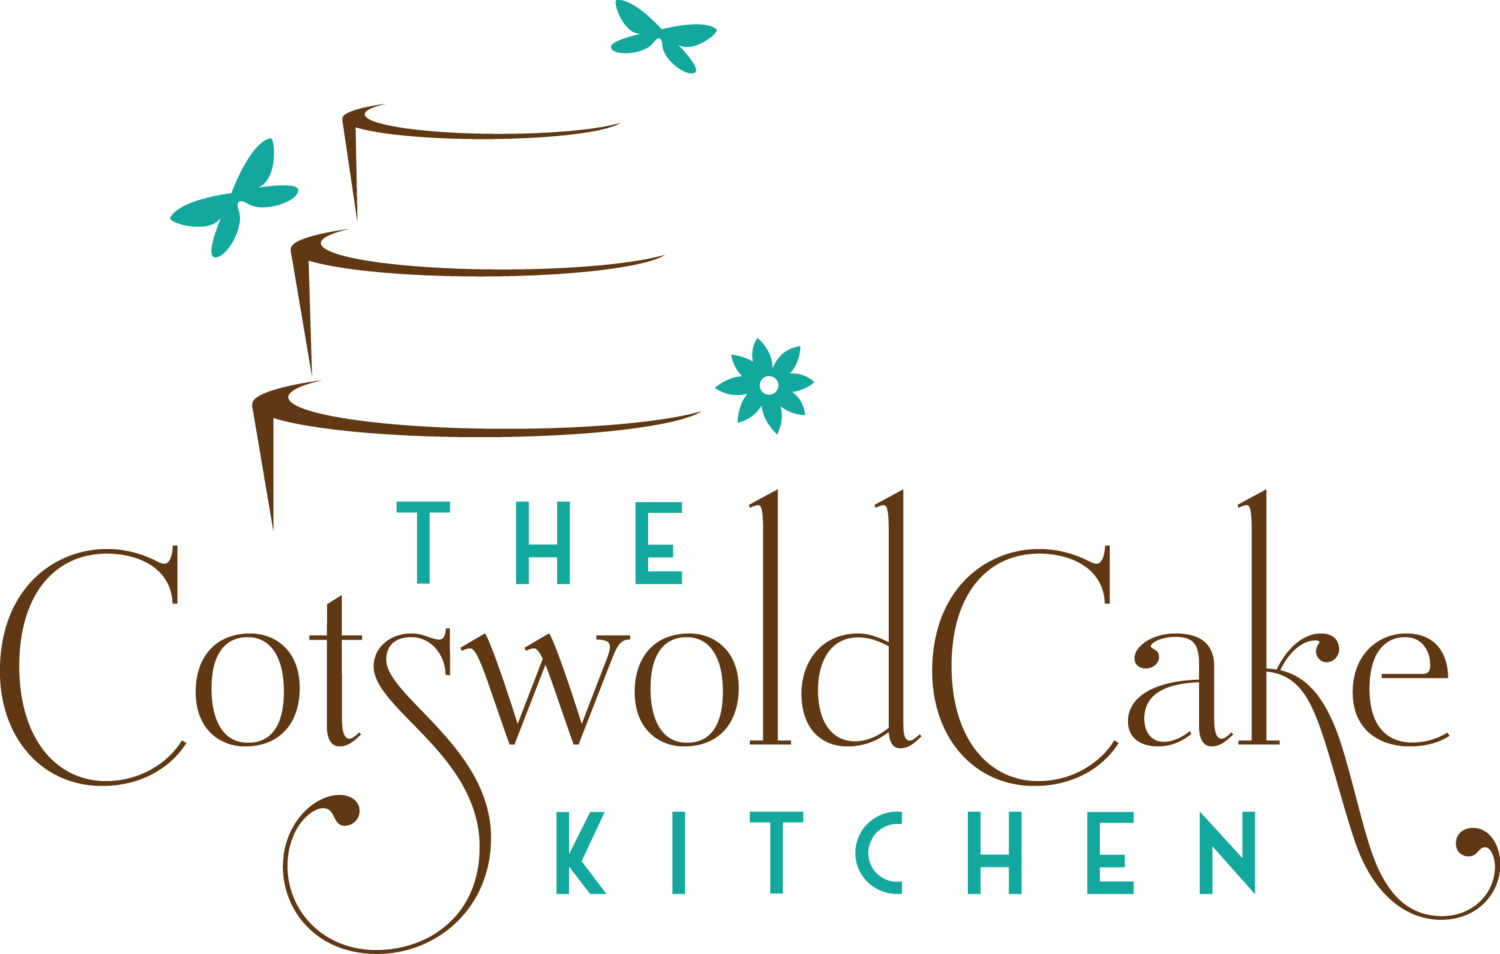 Wedding cakes in Cheltenham | Cotswold Cake Kitchen